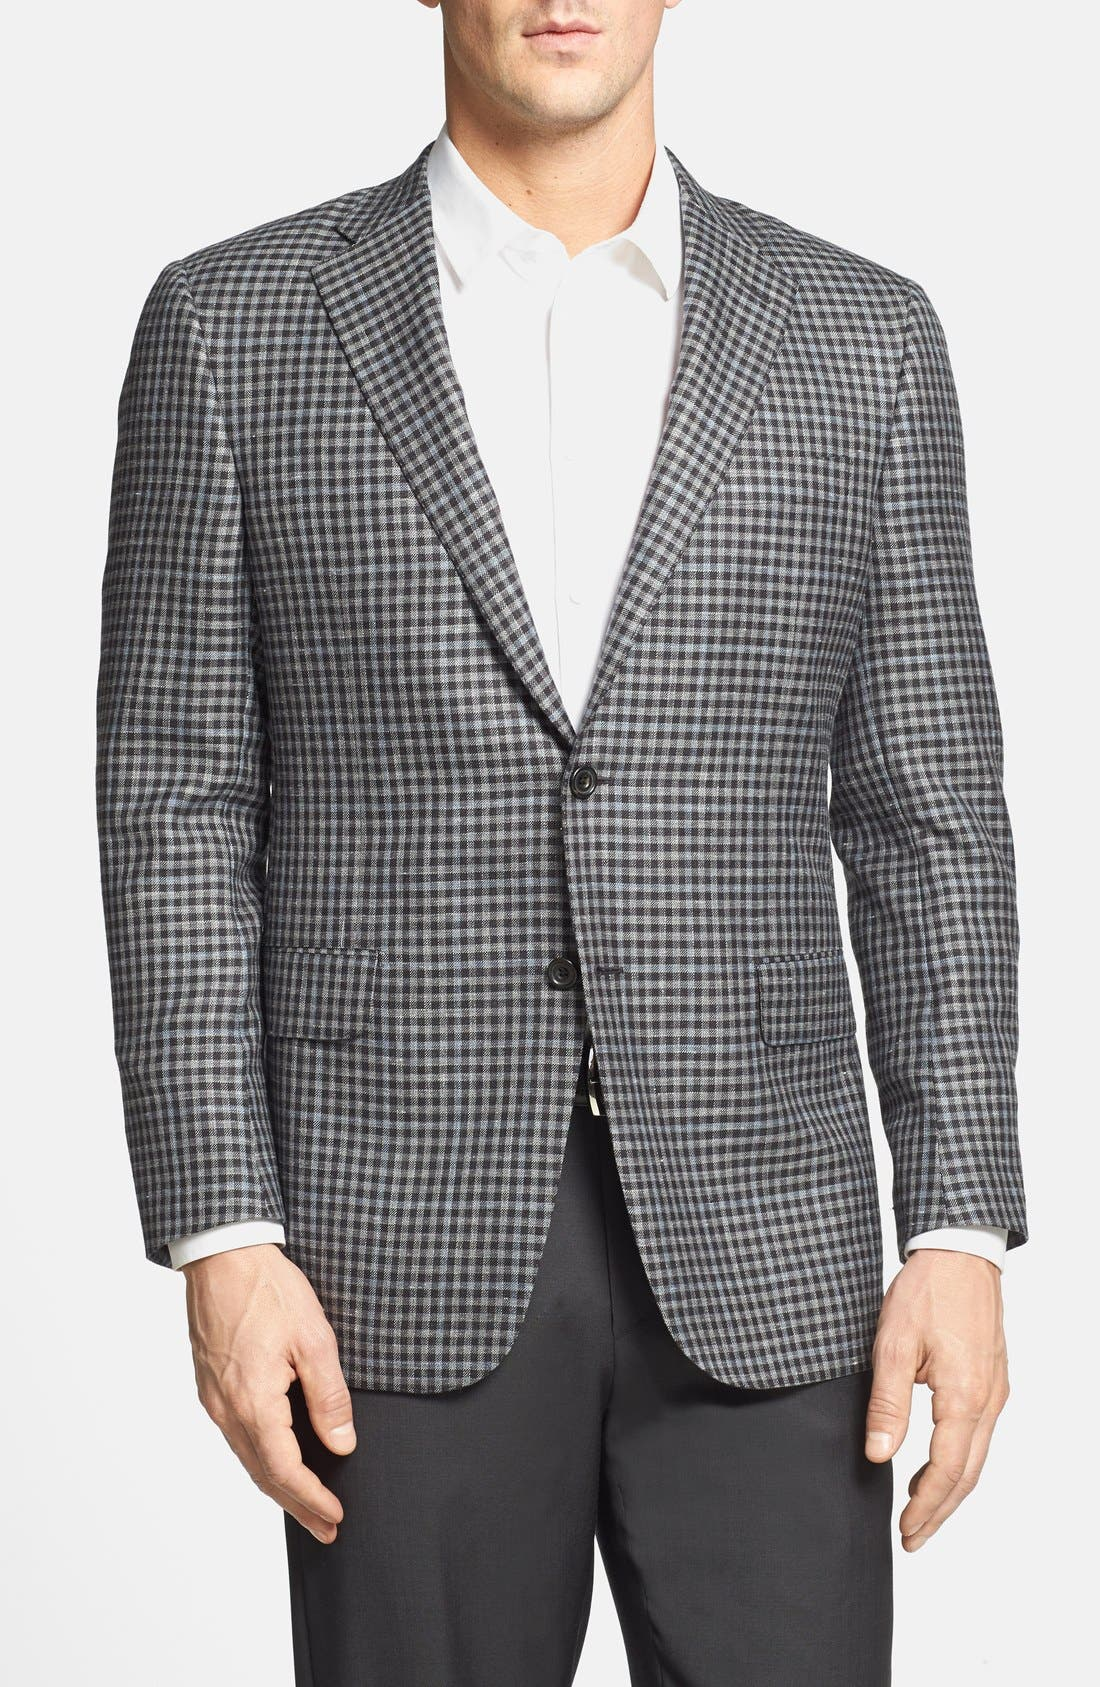 Main Image - Hickey Freeman 'Beacon' Classic Fit Wool Blend Sportcoat